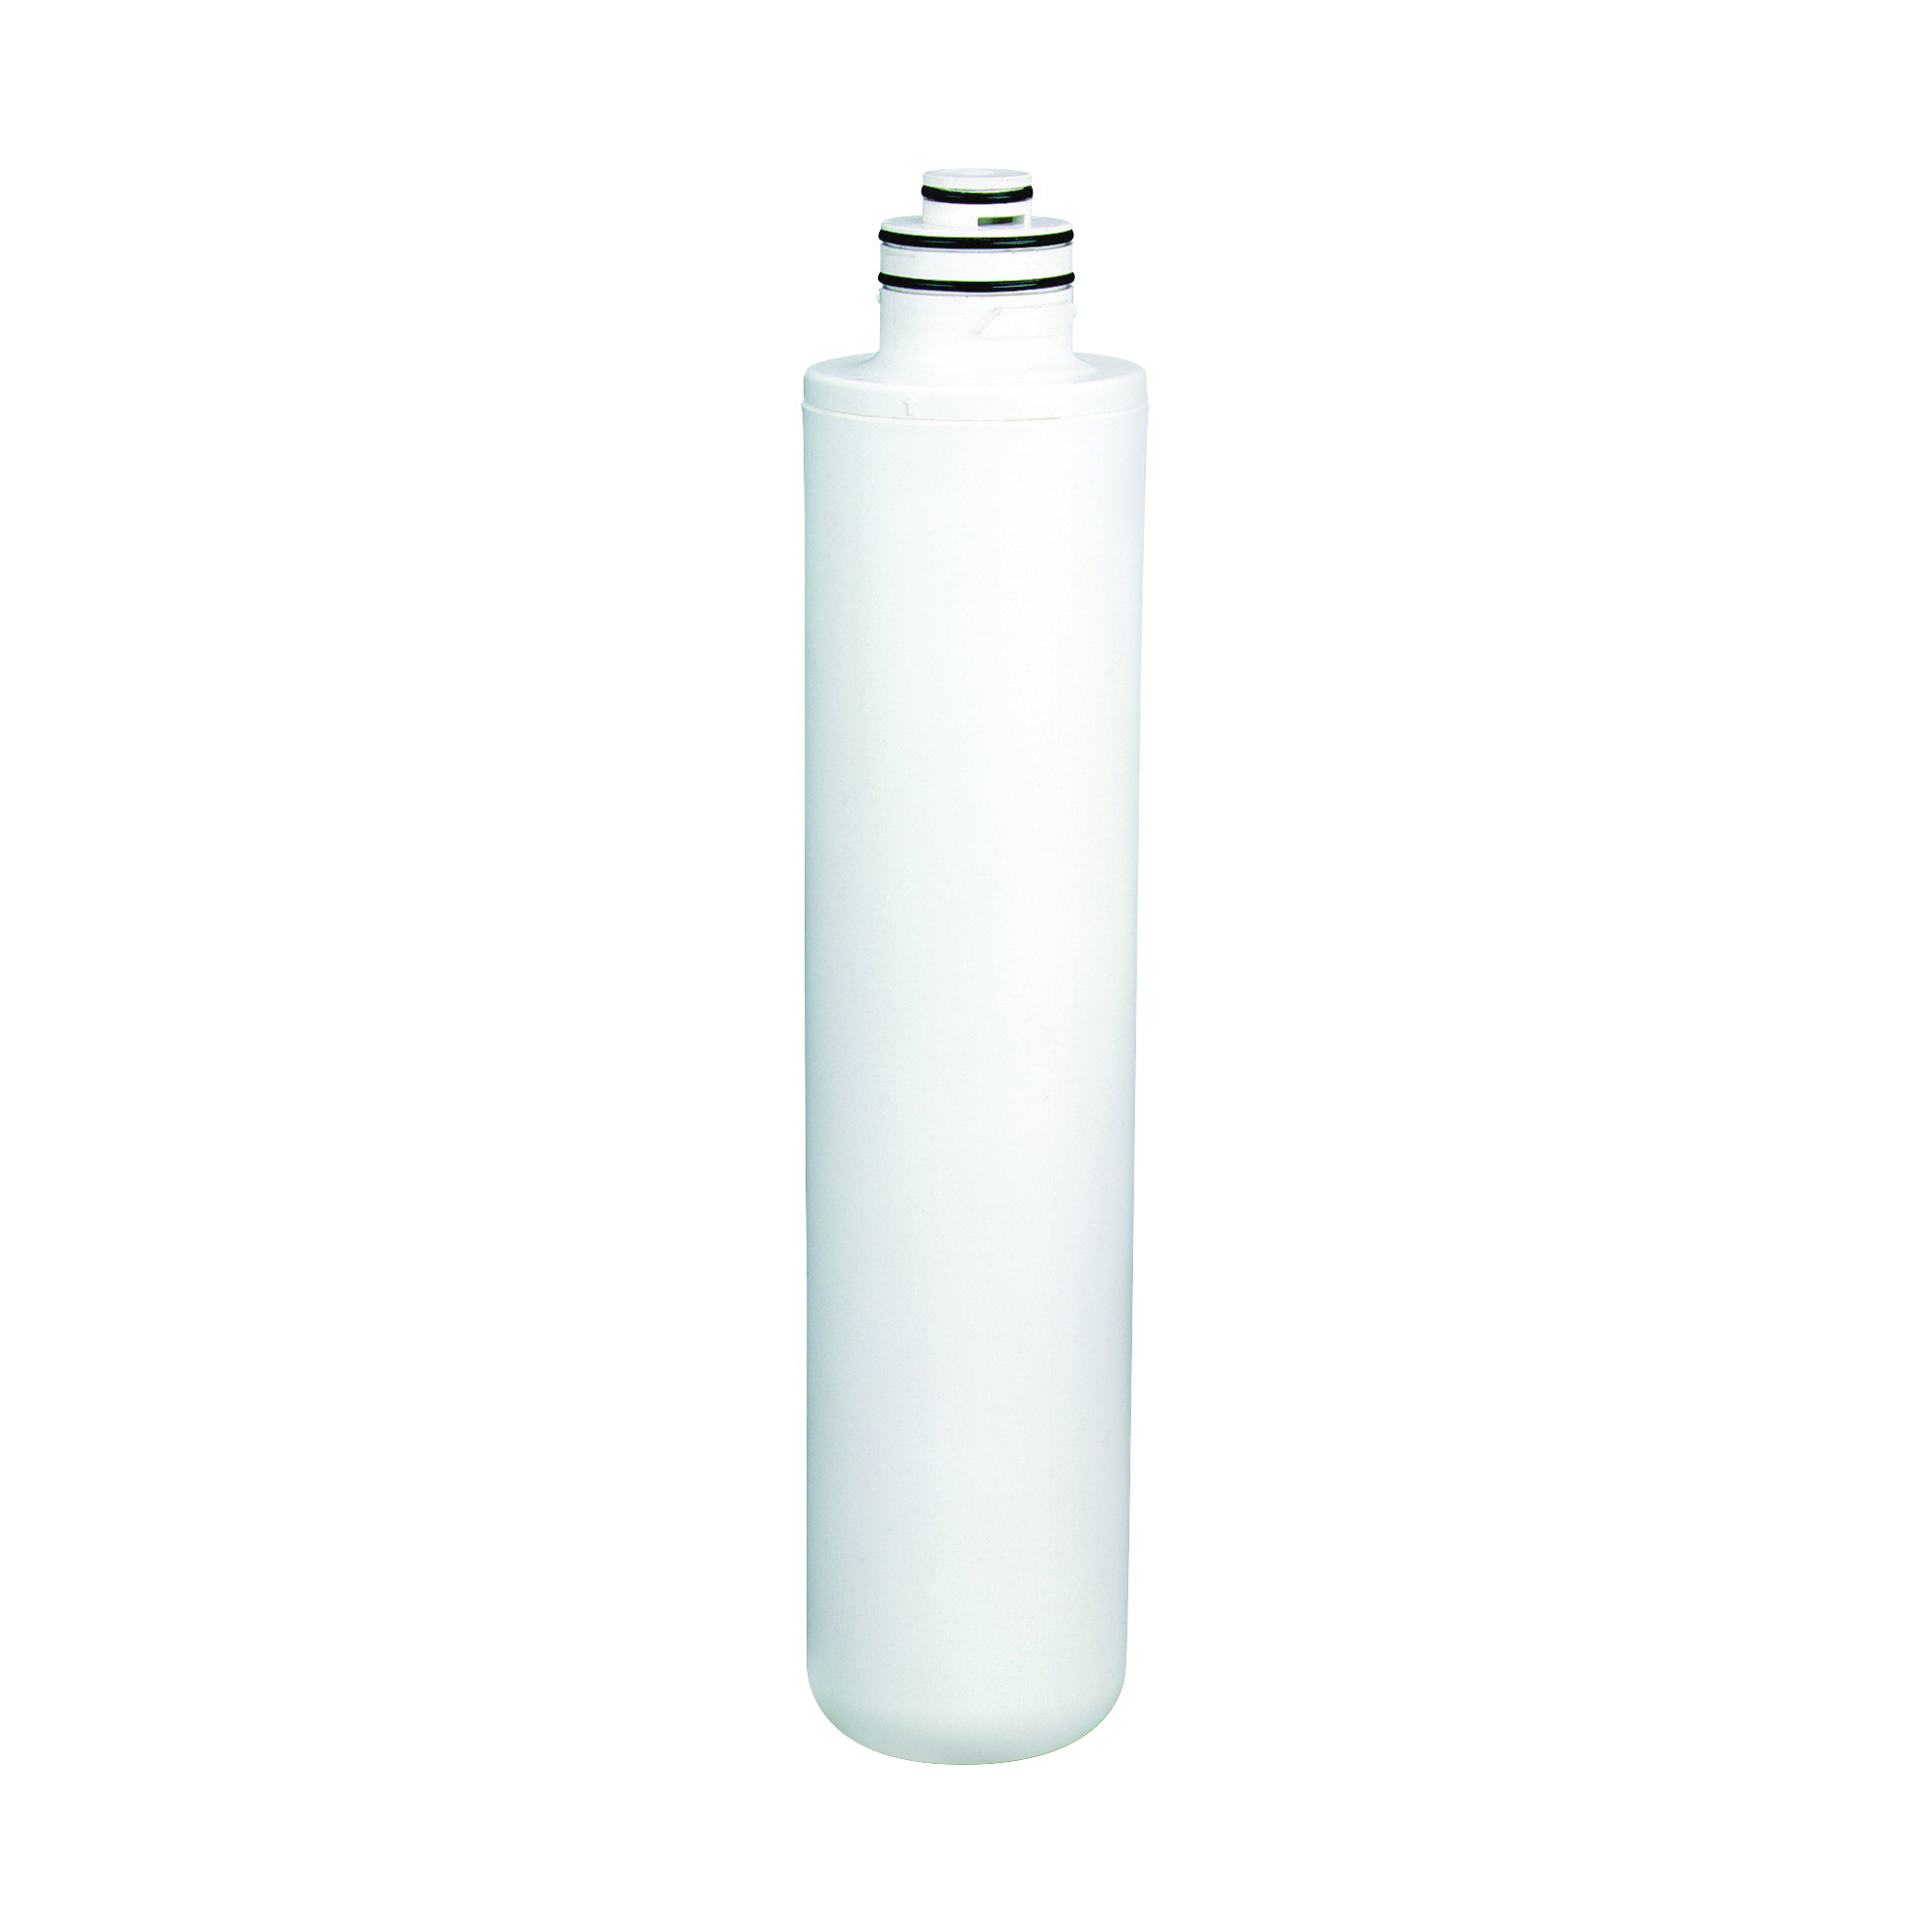 Picture of Culligan 1000-R Water Filter, Carbon Block Filter Media